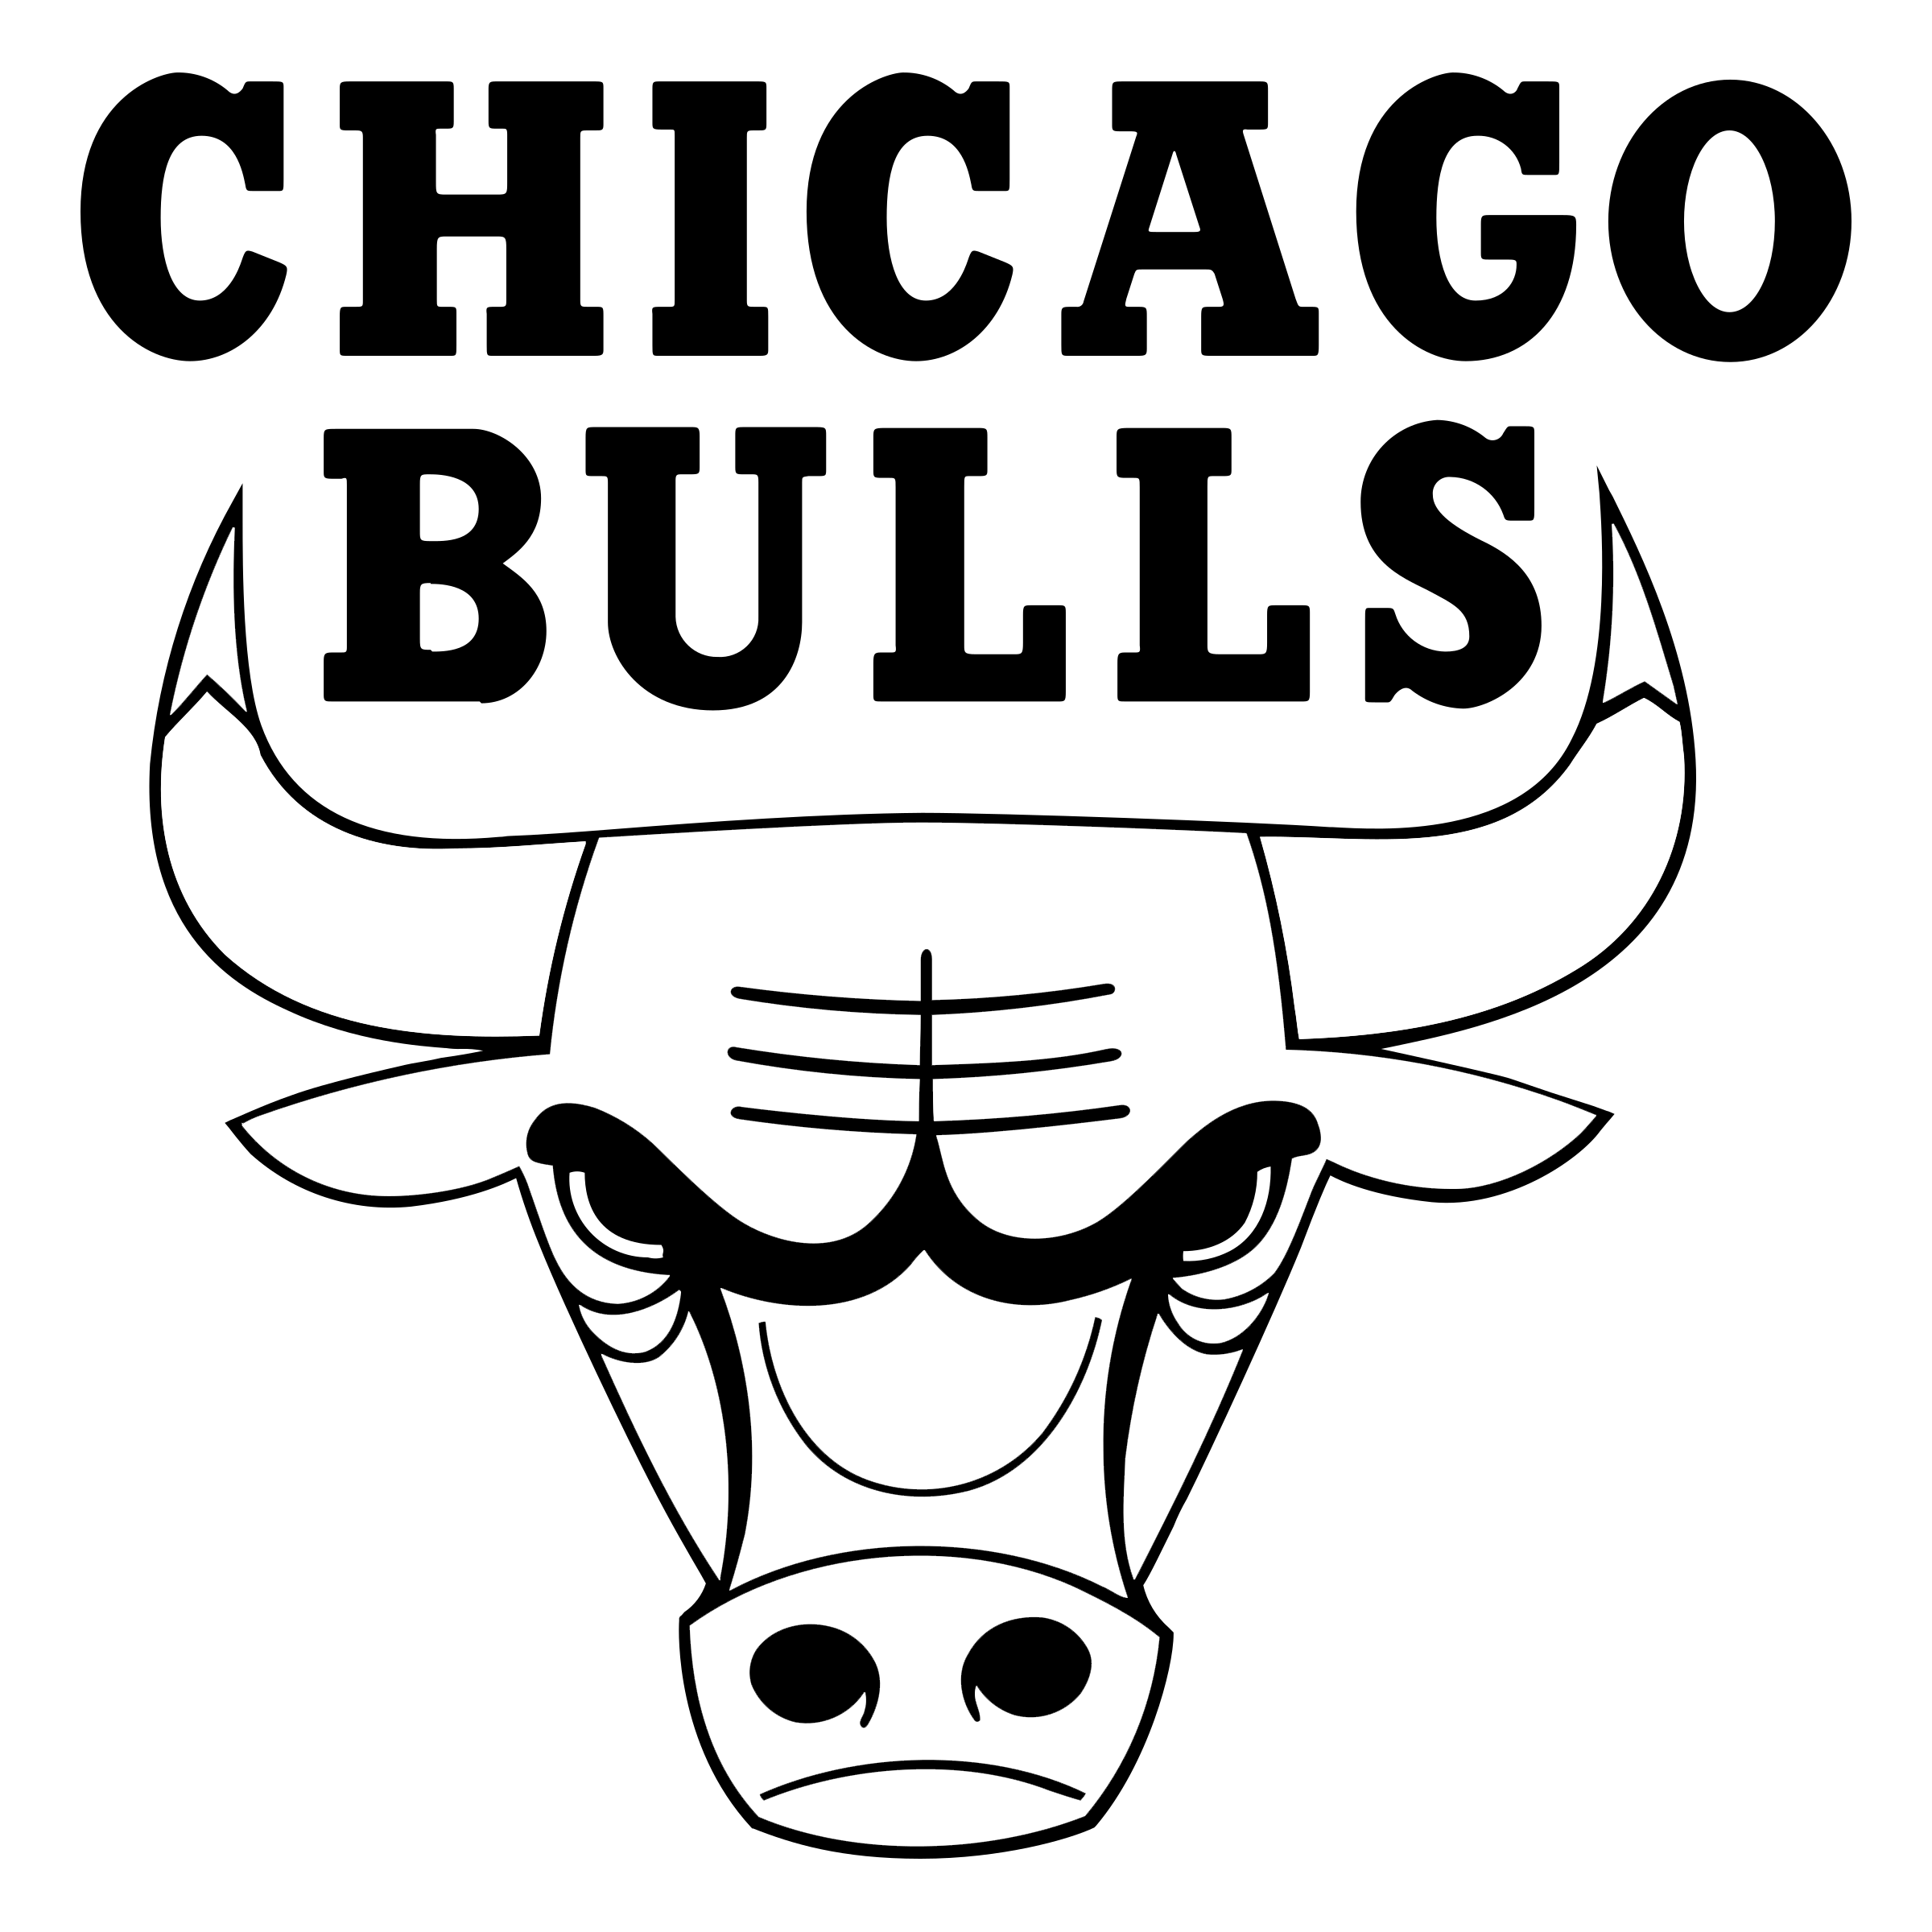 Chicago Bulls Logo moreover Clipart Dc87pRpce in addition Best Cartoon Sketches Disney Cartoon Best Mickey Mouse For Kid Coloring Drawing Free together with Rose Flower Outline Drawing Eletragesi Easy Flower Drawing Outline Images 3 likewise Raskraska. on face drawing